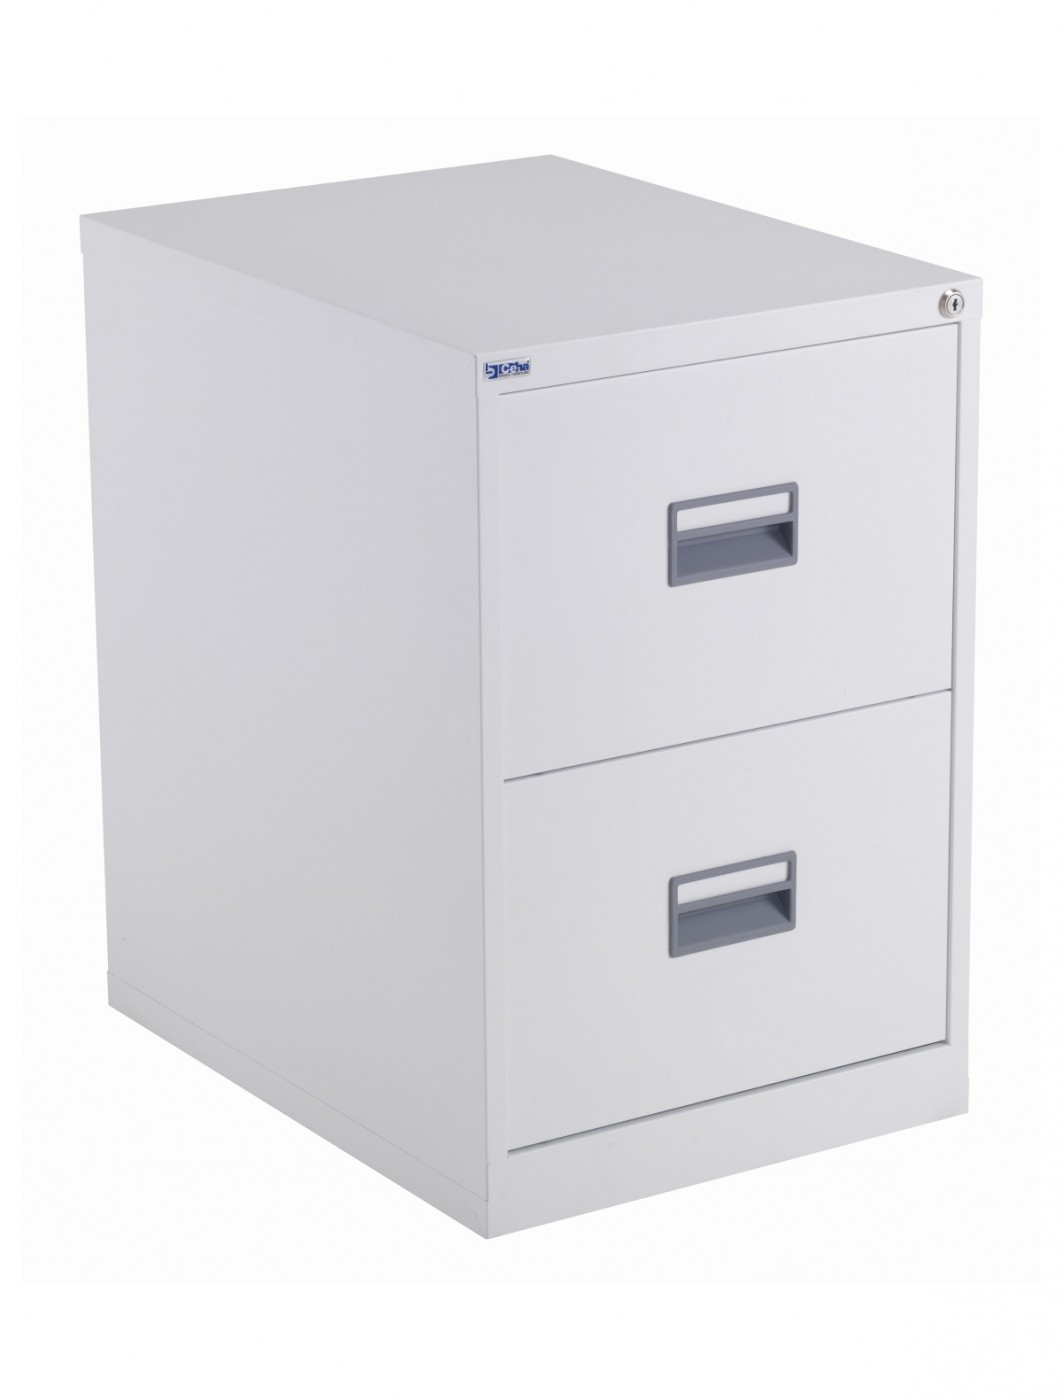 Steel Storage - TC Talos 2 Drawer Steel Filing Cabinet TCS2FC-WH in White